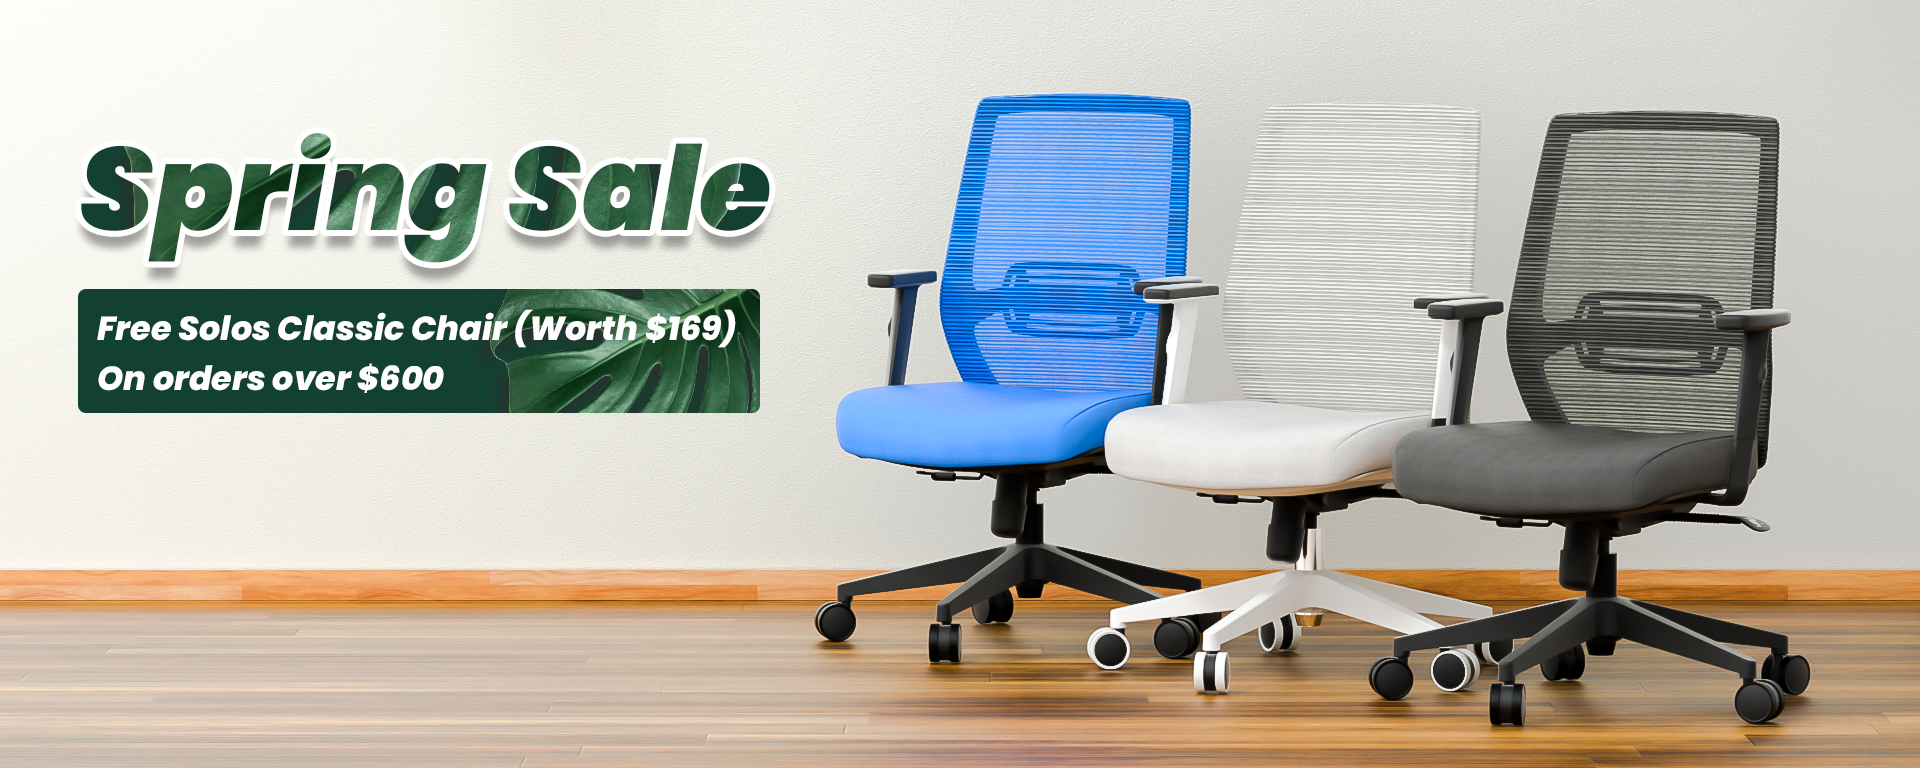 SOLOS Spring Sale Free Chair